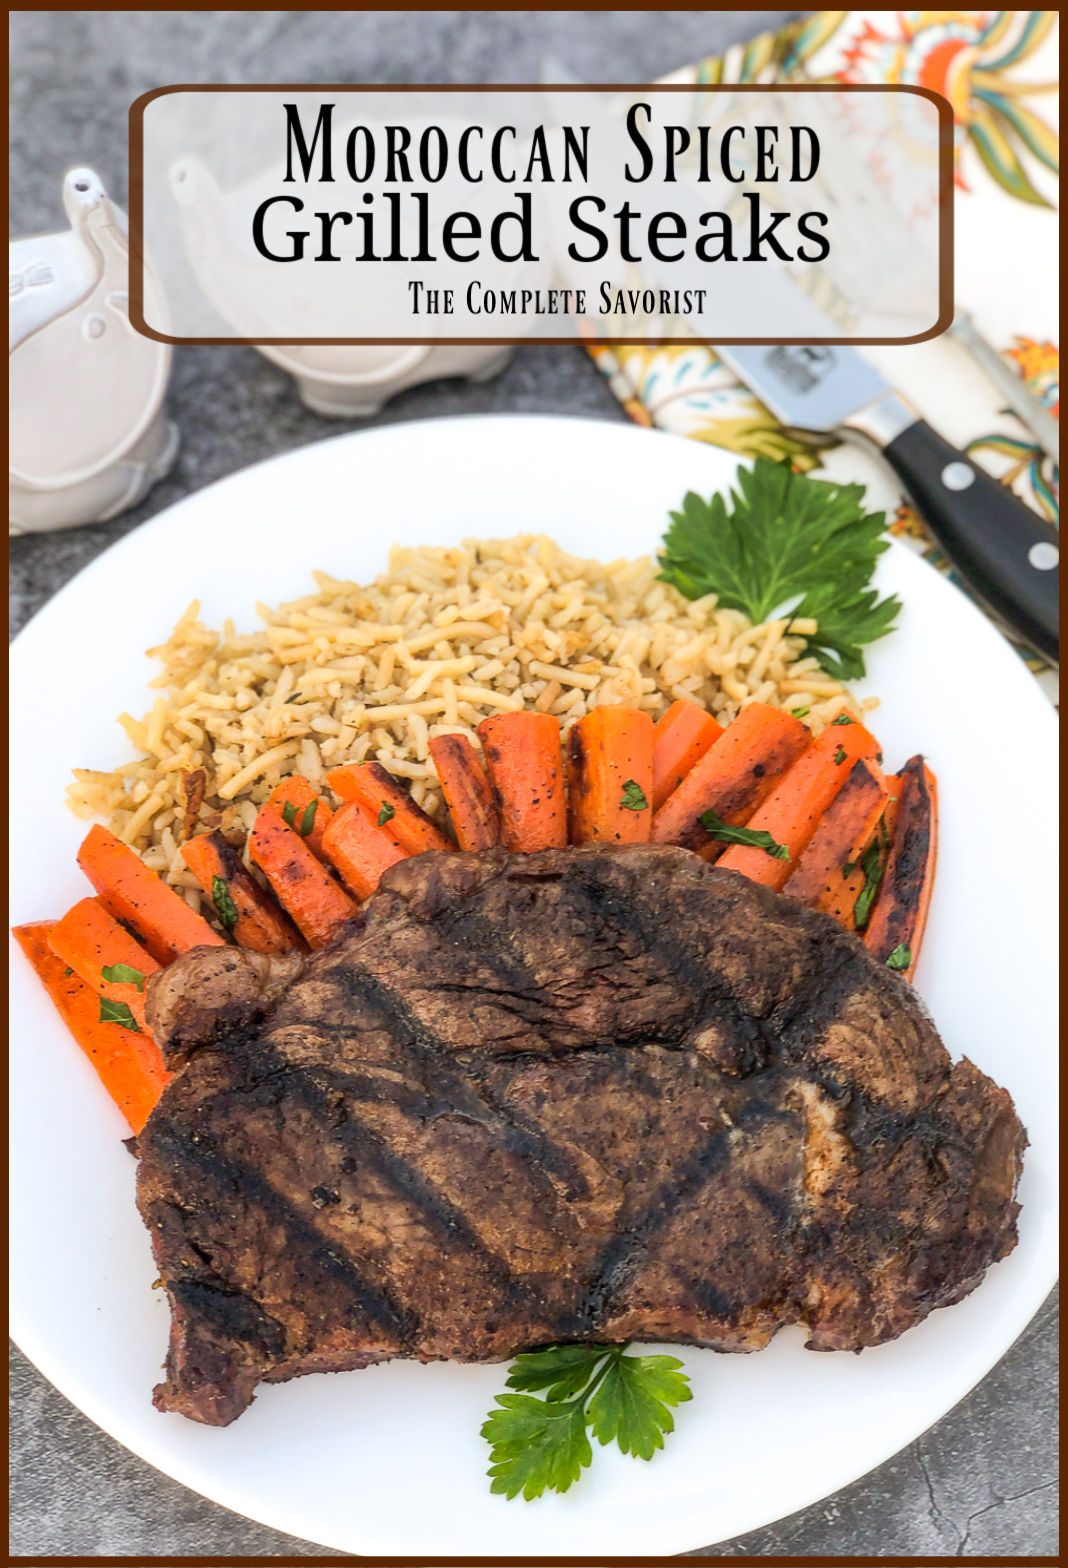 Grilled steak with cooked carrots and rice pilaf on a white plate, garnished with fresh parsley. Knife and fork in the background.